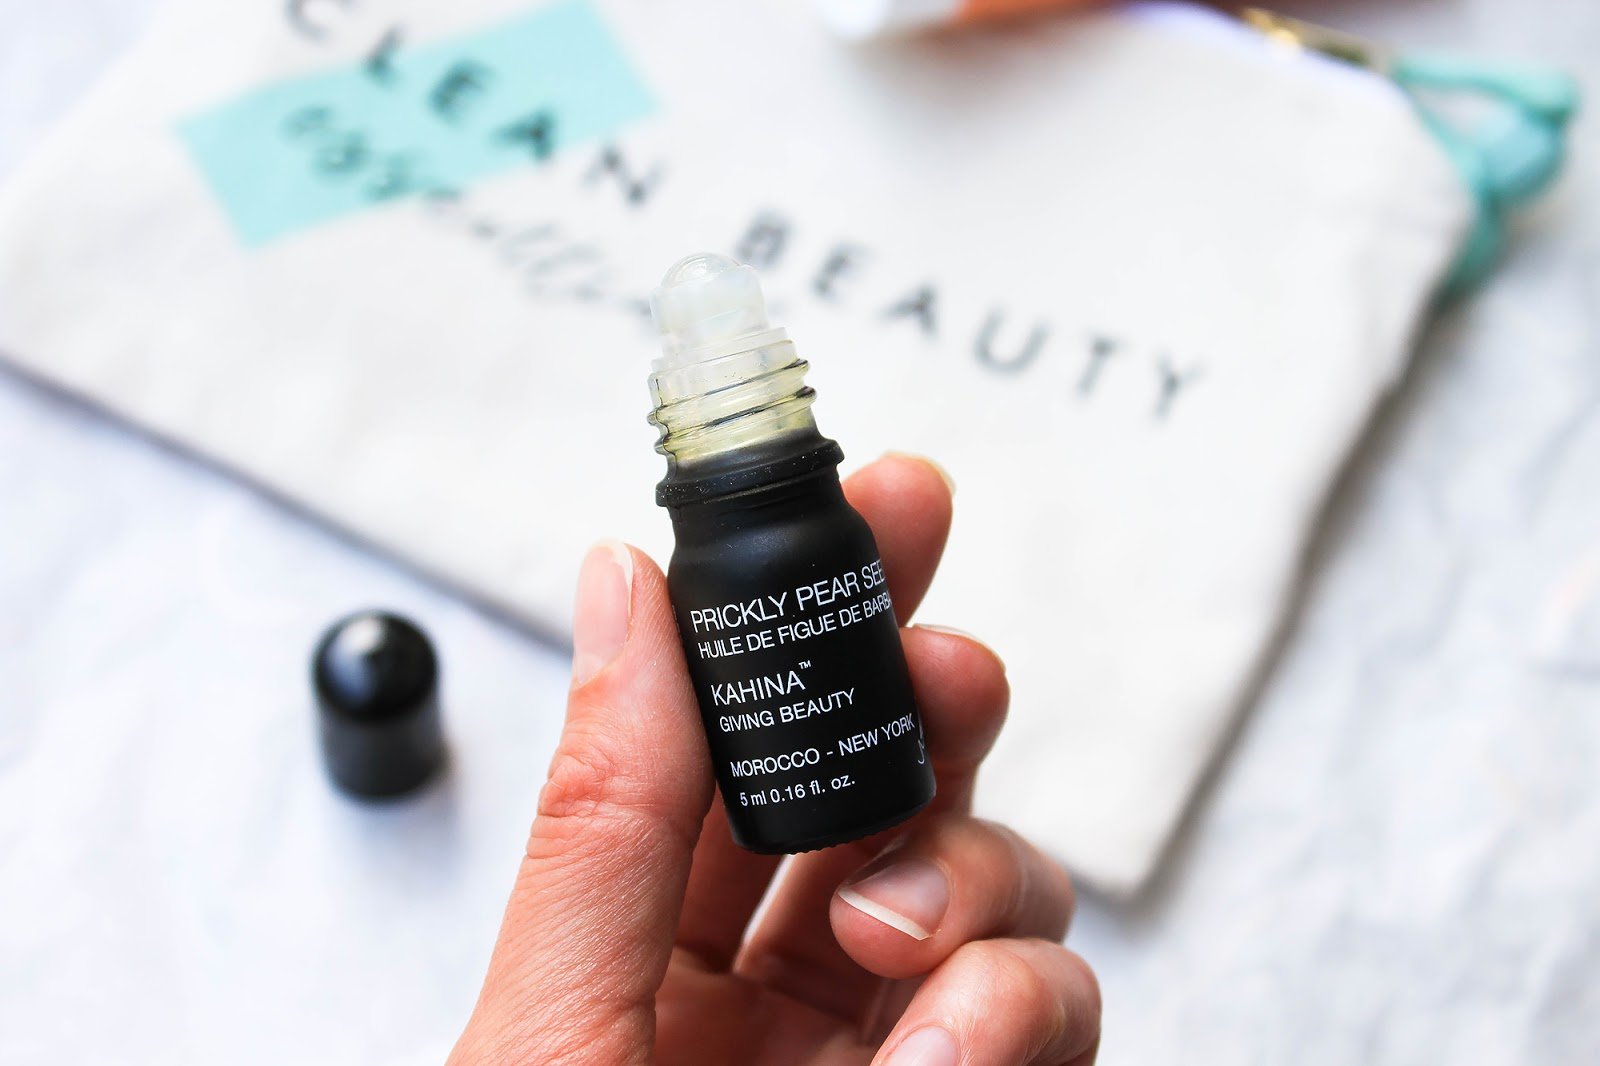 May Art of Organics Clean Beauty Box Clean Beauty Essentials. JET SET. Kahina Giving Beauty Prickly Pear Seed Oil Undereye Rollerball.